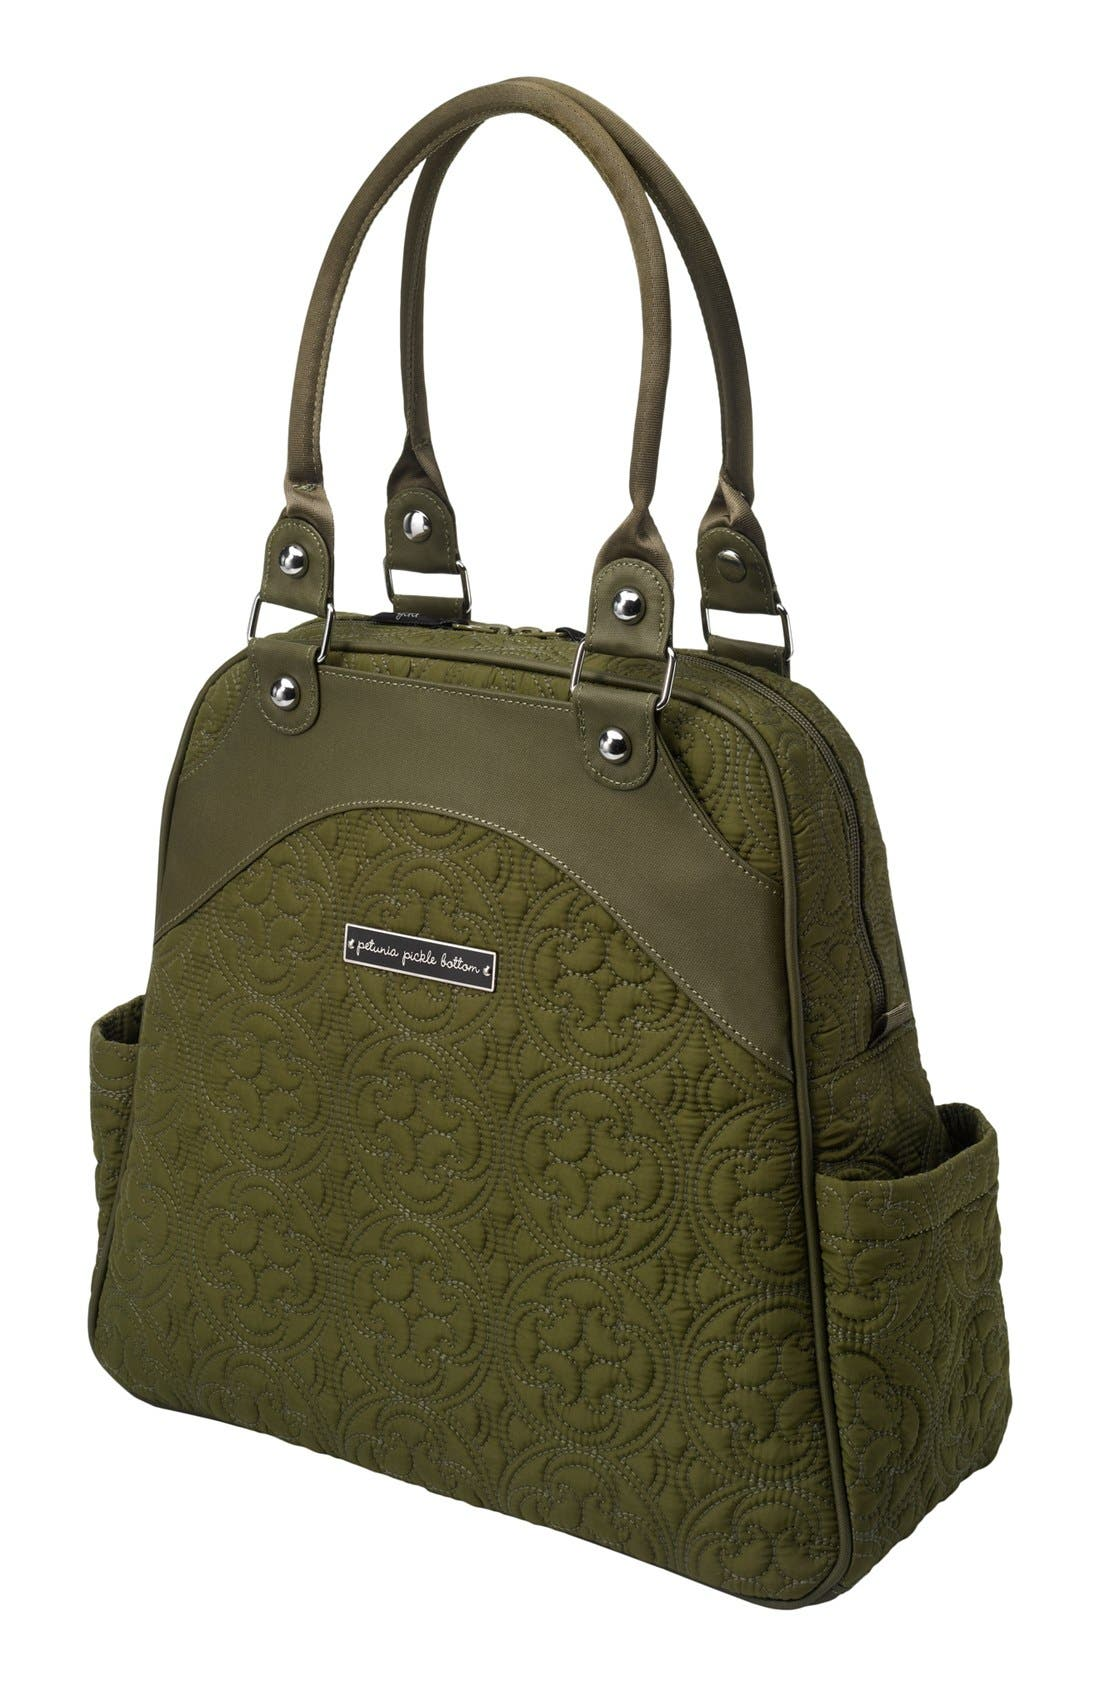 Alternate Image 1 Selected - Petunia Pickle Bottom 'Embossed Sashay Satchel' Diaper Bag